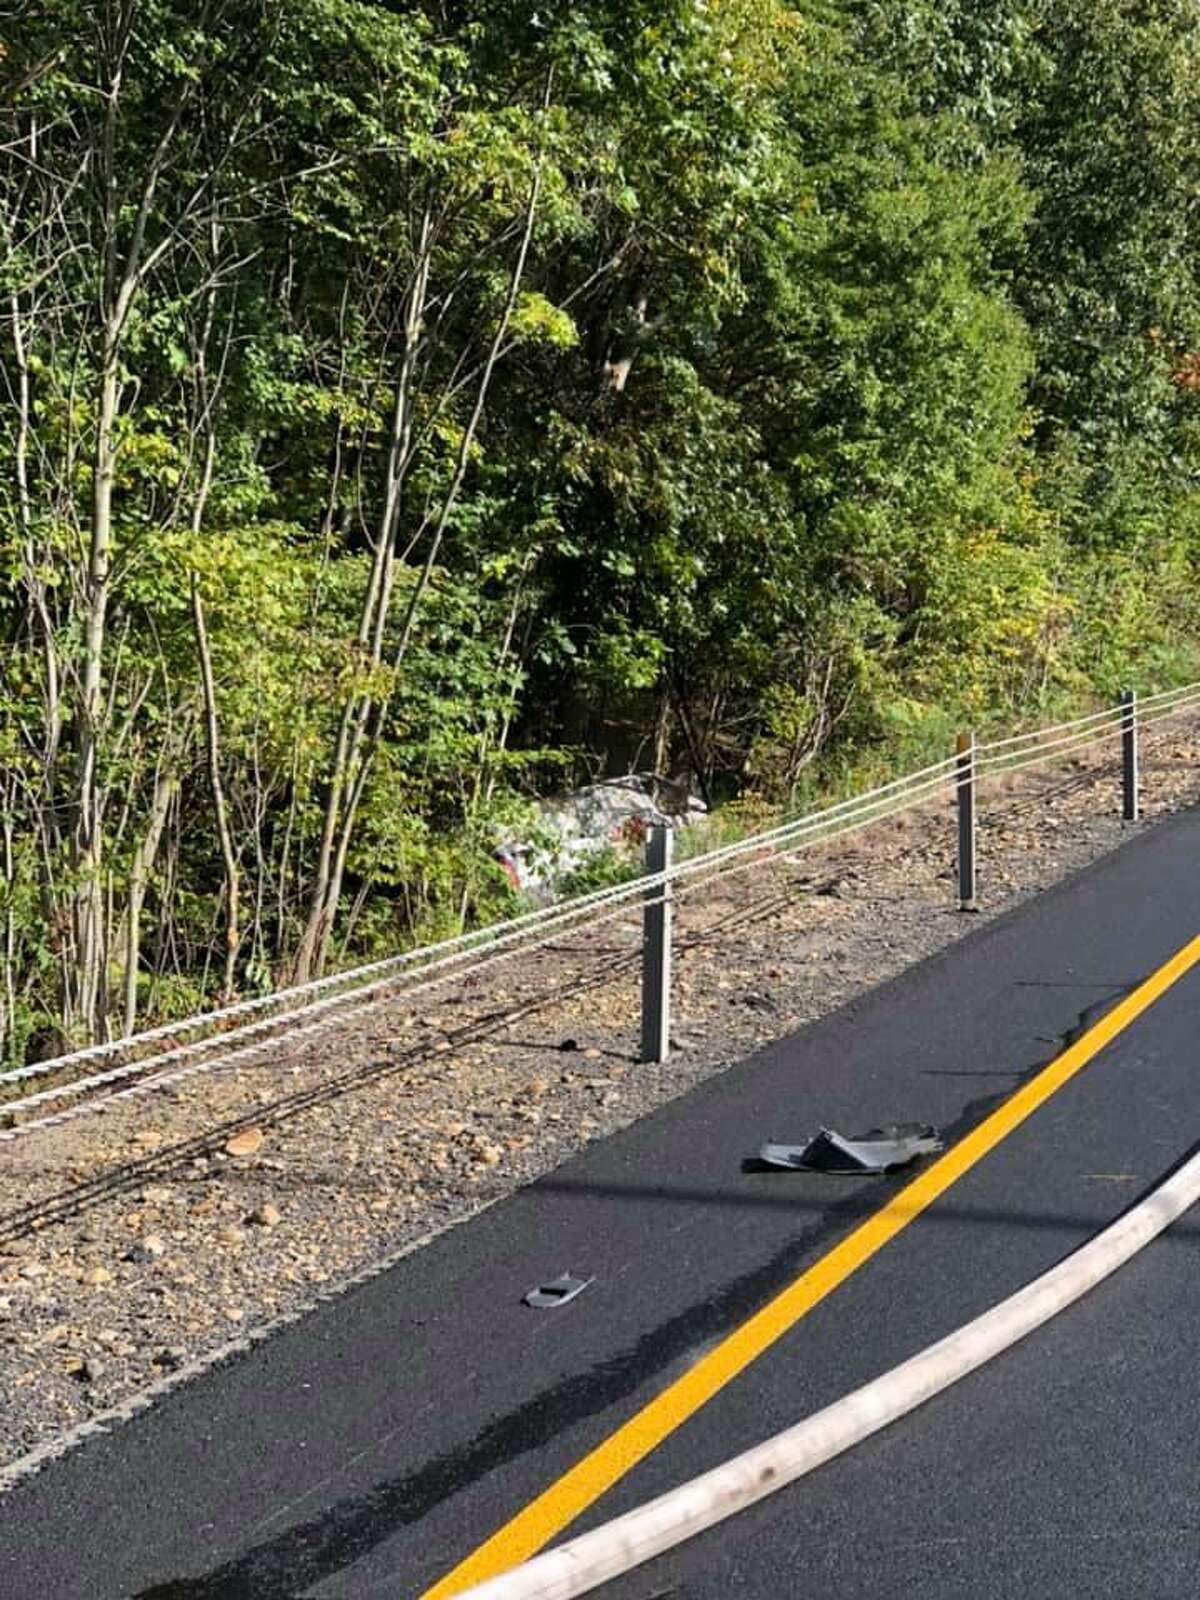 A vehicle crashed into the woods off Interstate 95 in Groton, Conn., on Tuesday, Oct. 12, 2021.